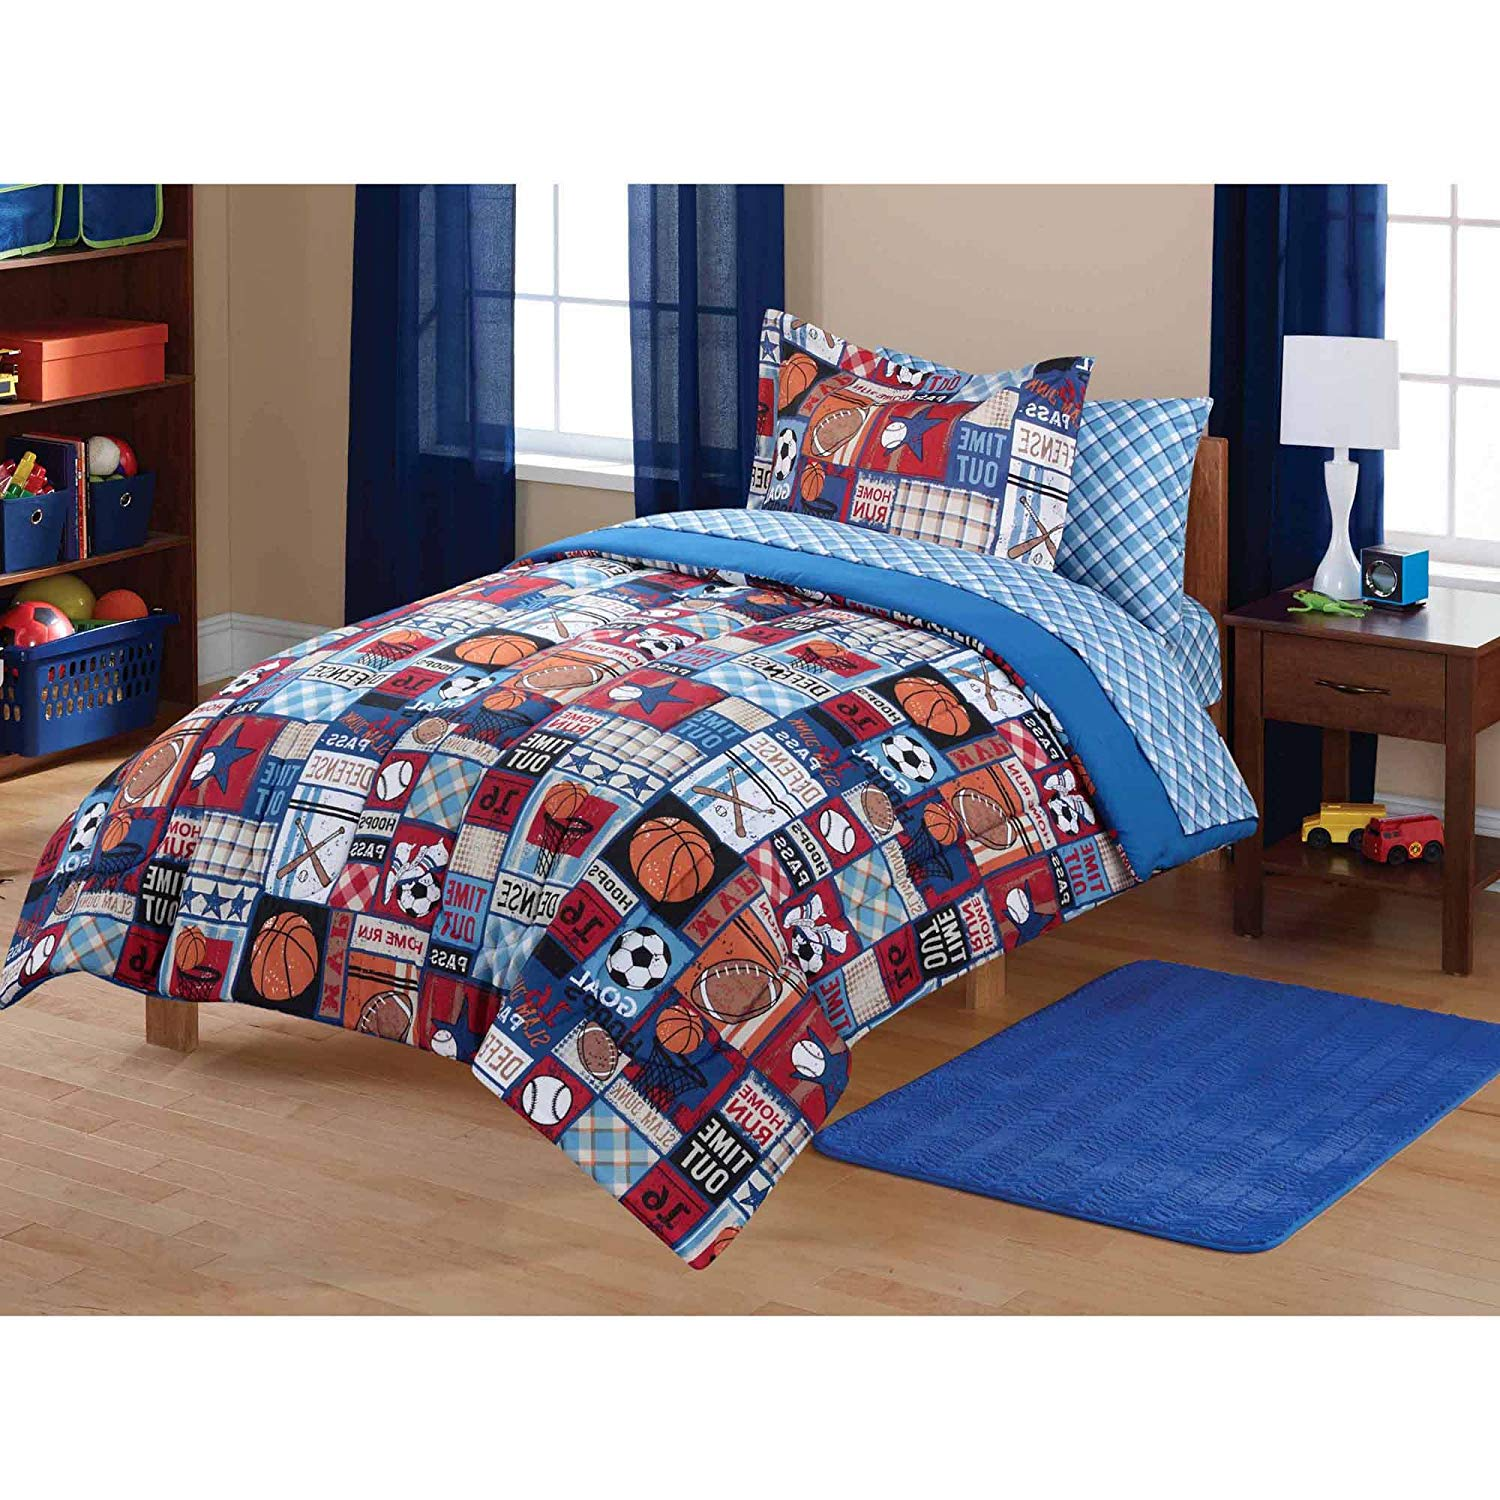 7 Piece Multi Color Patchwork Sports Theme Comforter Set Full With Sheets, Brown Blue Red All Over Football Basketball Badminton Checkered Printed, Reversible Navy White Checkered